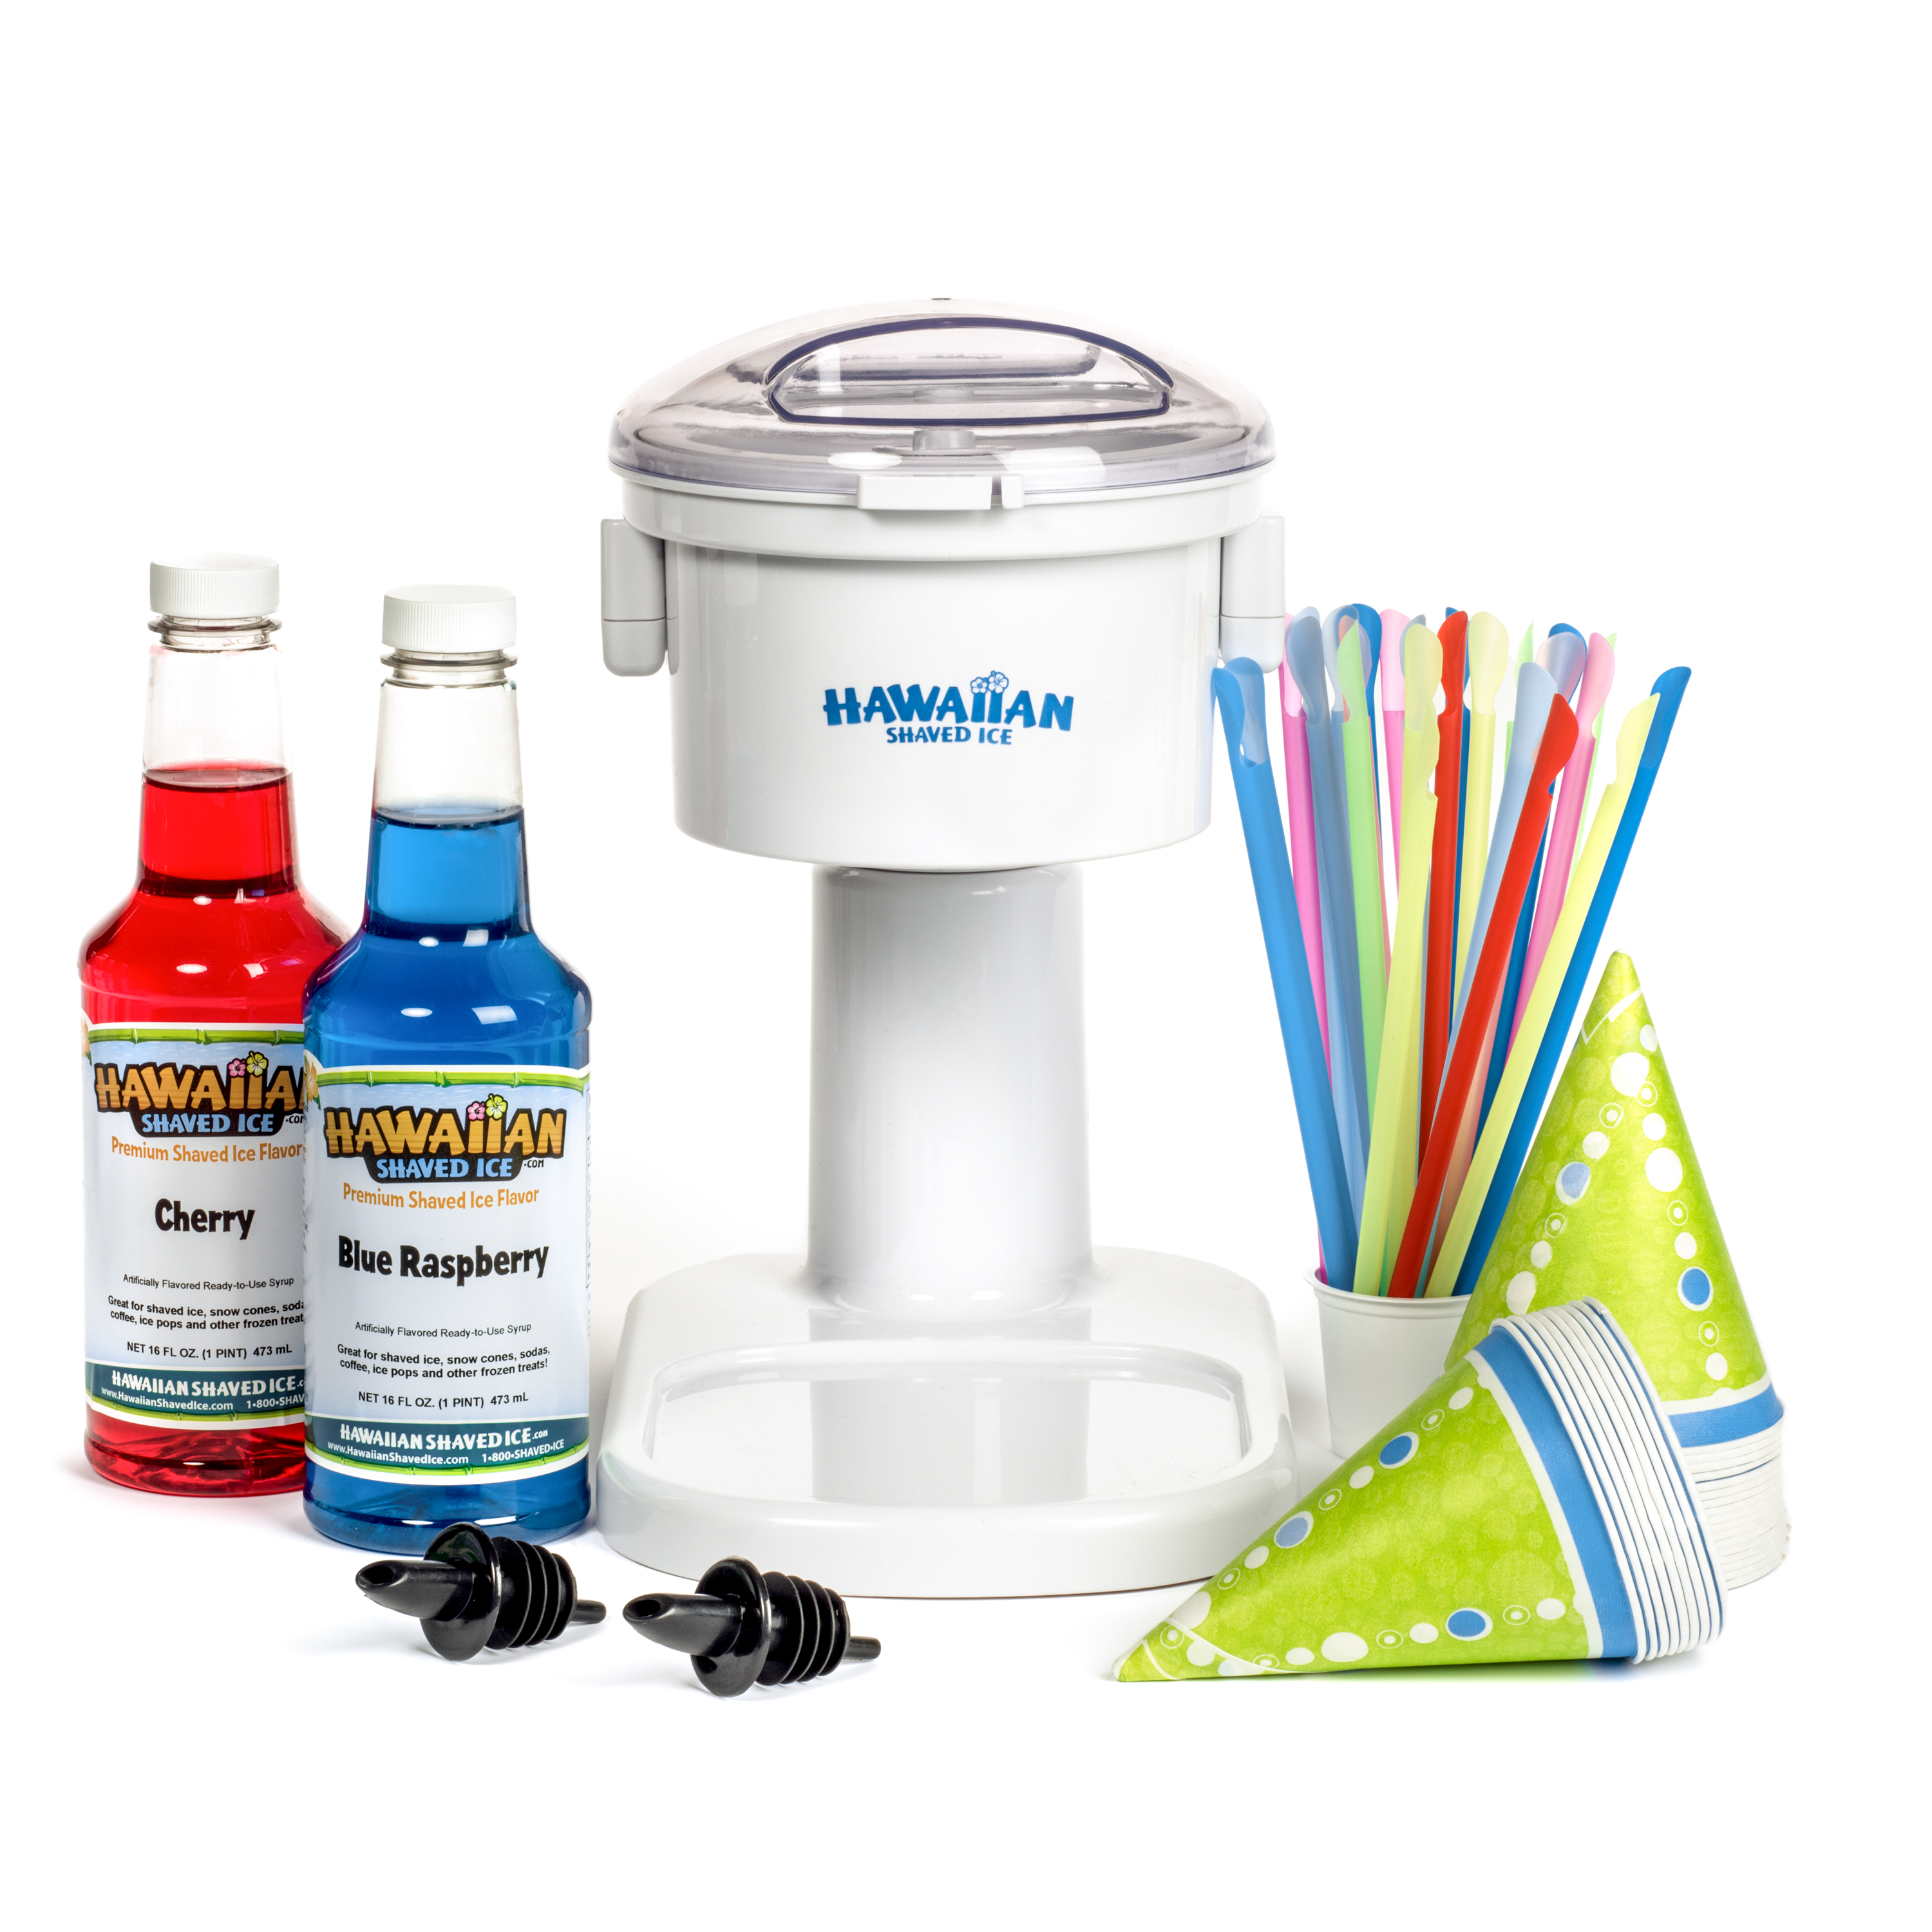 Kid-Friendly Snow Cone Machine Package with Syrup and Accessories | Hawaiian Shaved Ice